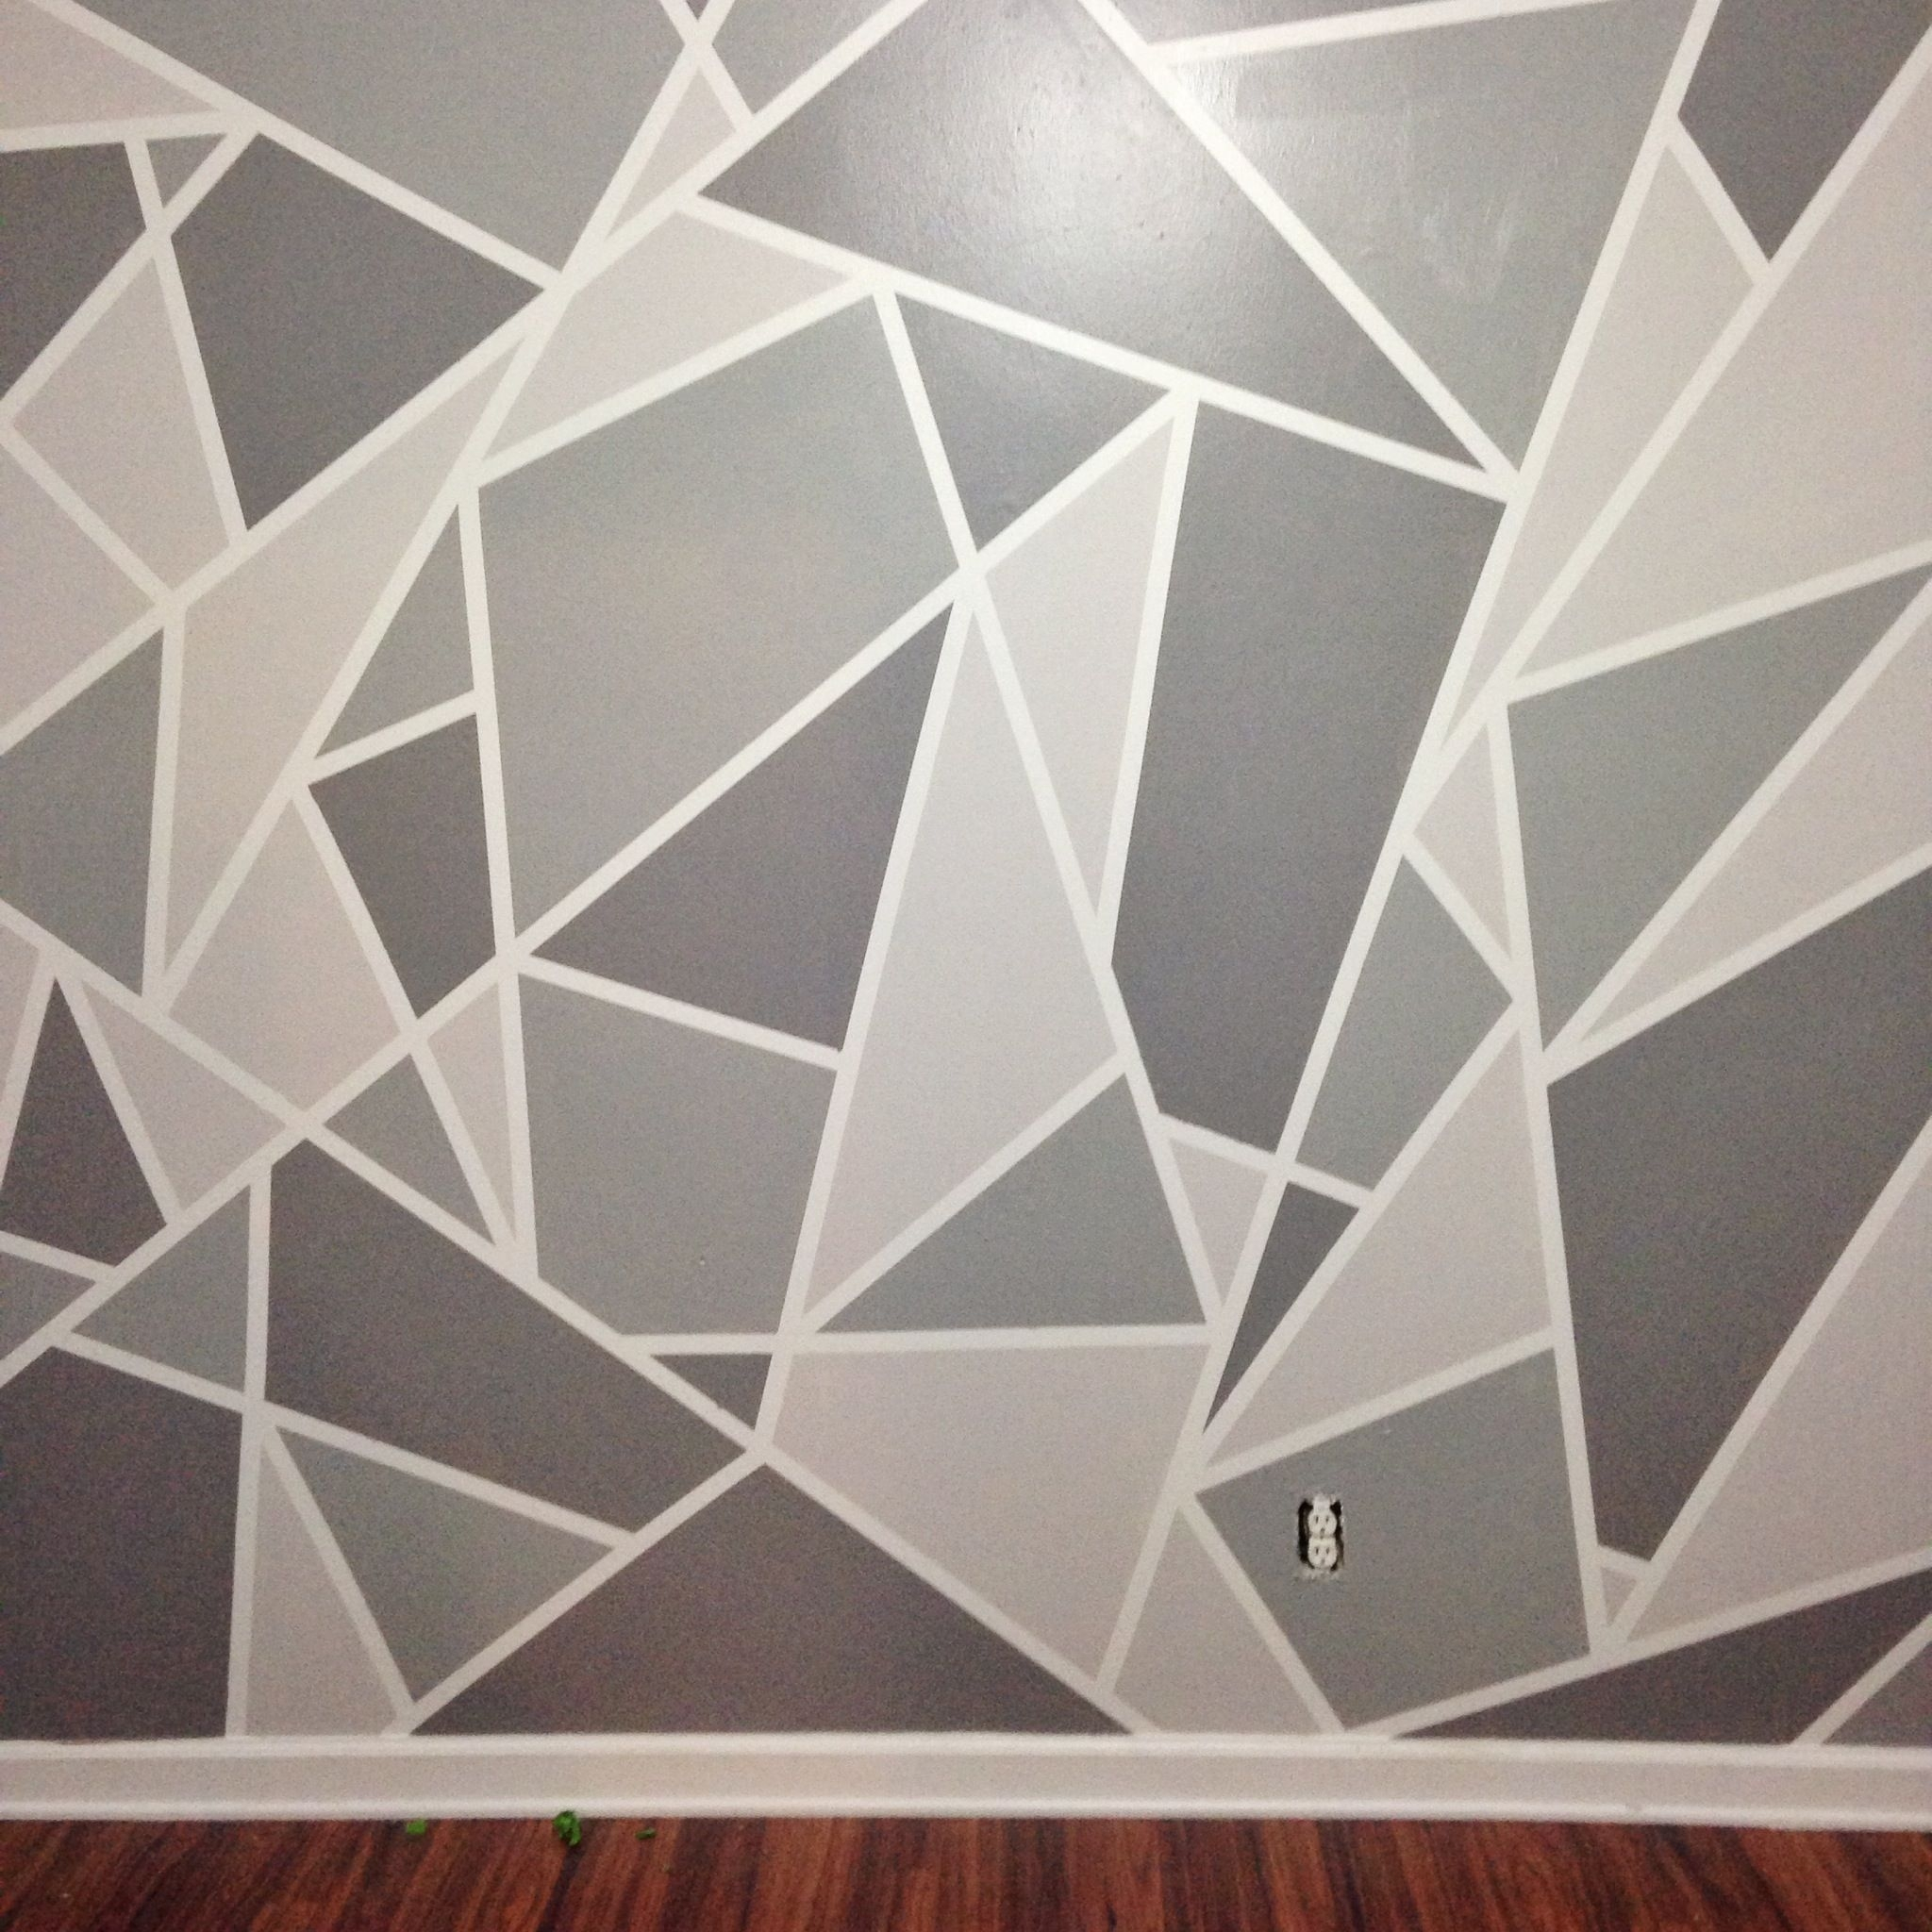 Diy Faux Wallpaper Accent Wall Statement Wall Diy Wallpaper | Gray In 2018 Geometric Shapes Wall Accents (Gallery 1 of 15)